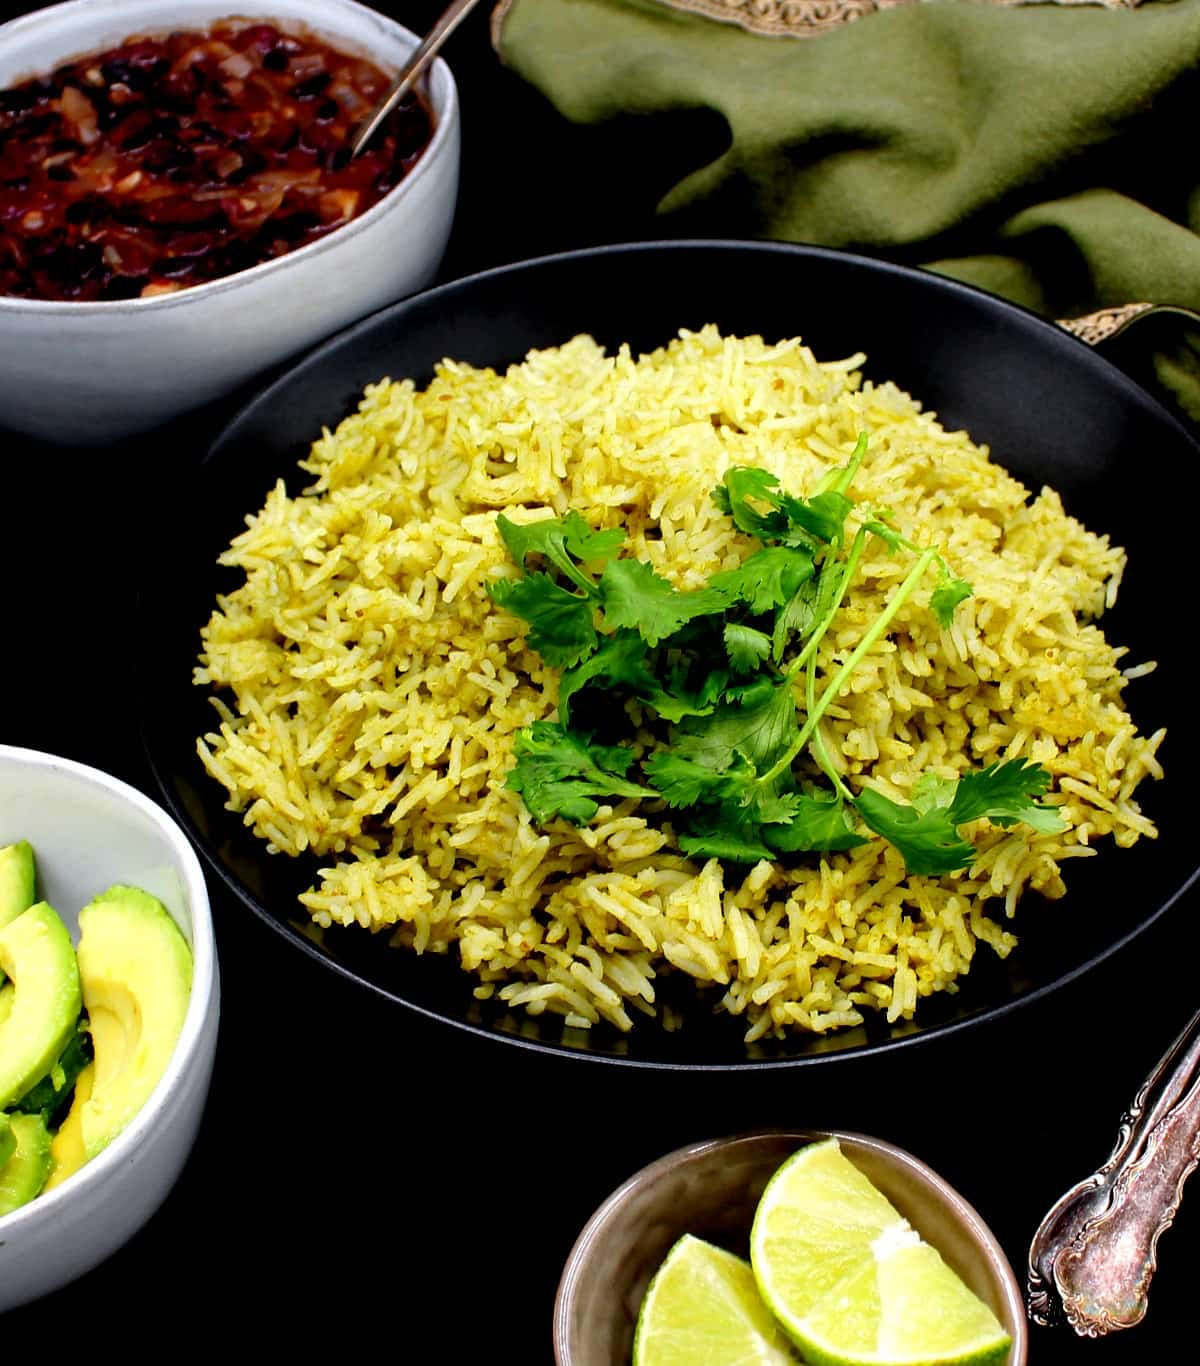 A front shot of a dinner table with a black bowl with Mexican green rice and cilantro, surrounded by wedges of lime, avocado and refried beans, In the background is a green napkin with gold border, and all of it is on a black background.